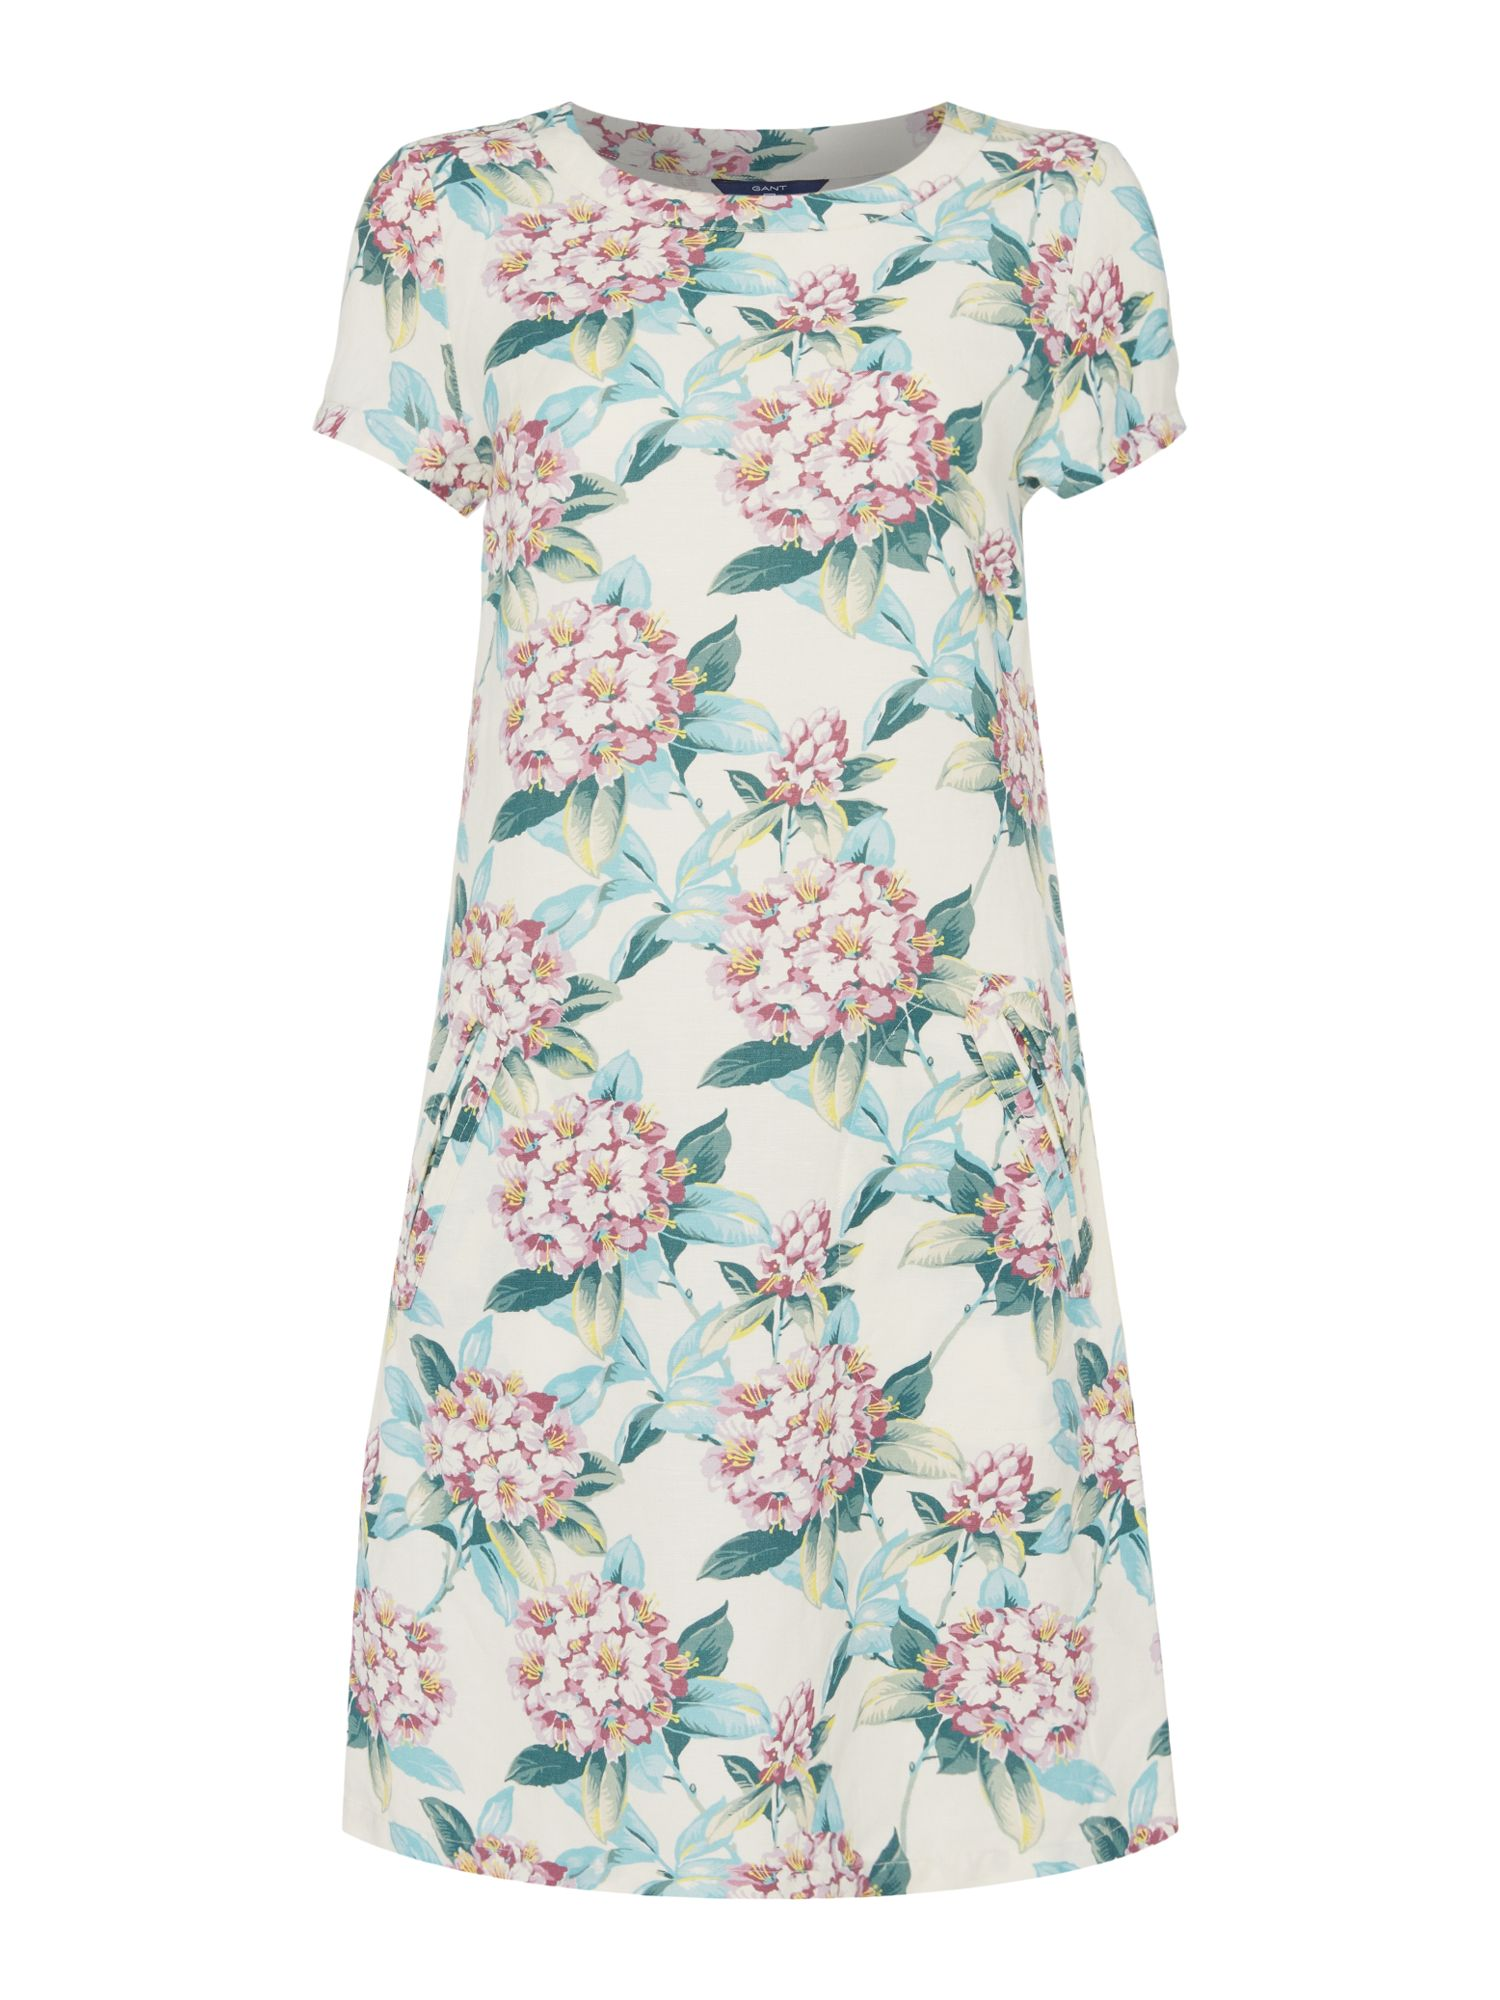 Gant Spring flower a line dress, Multi-Coloured